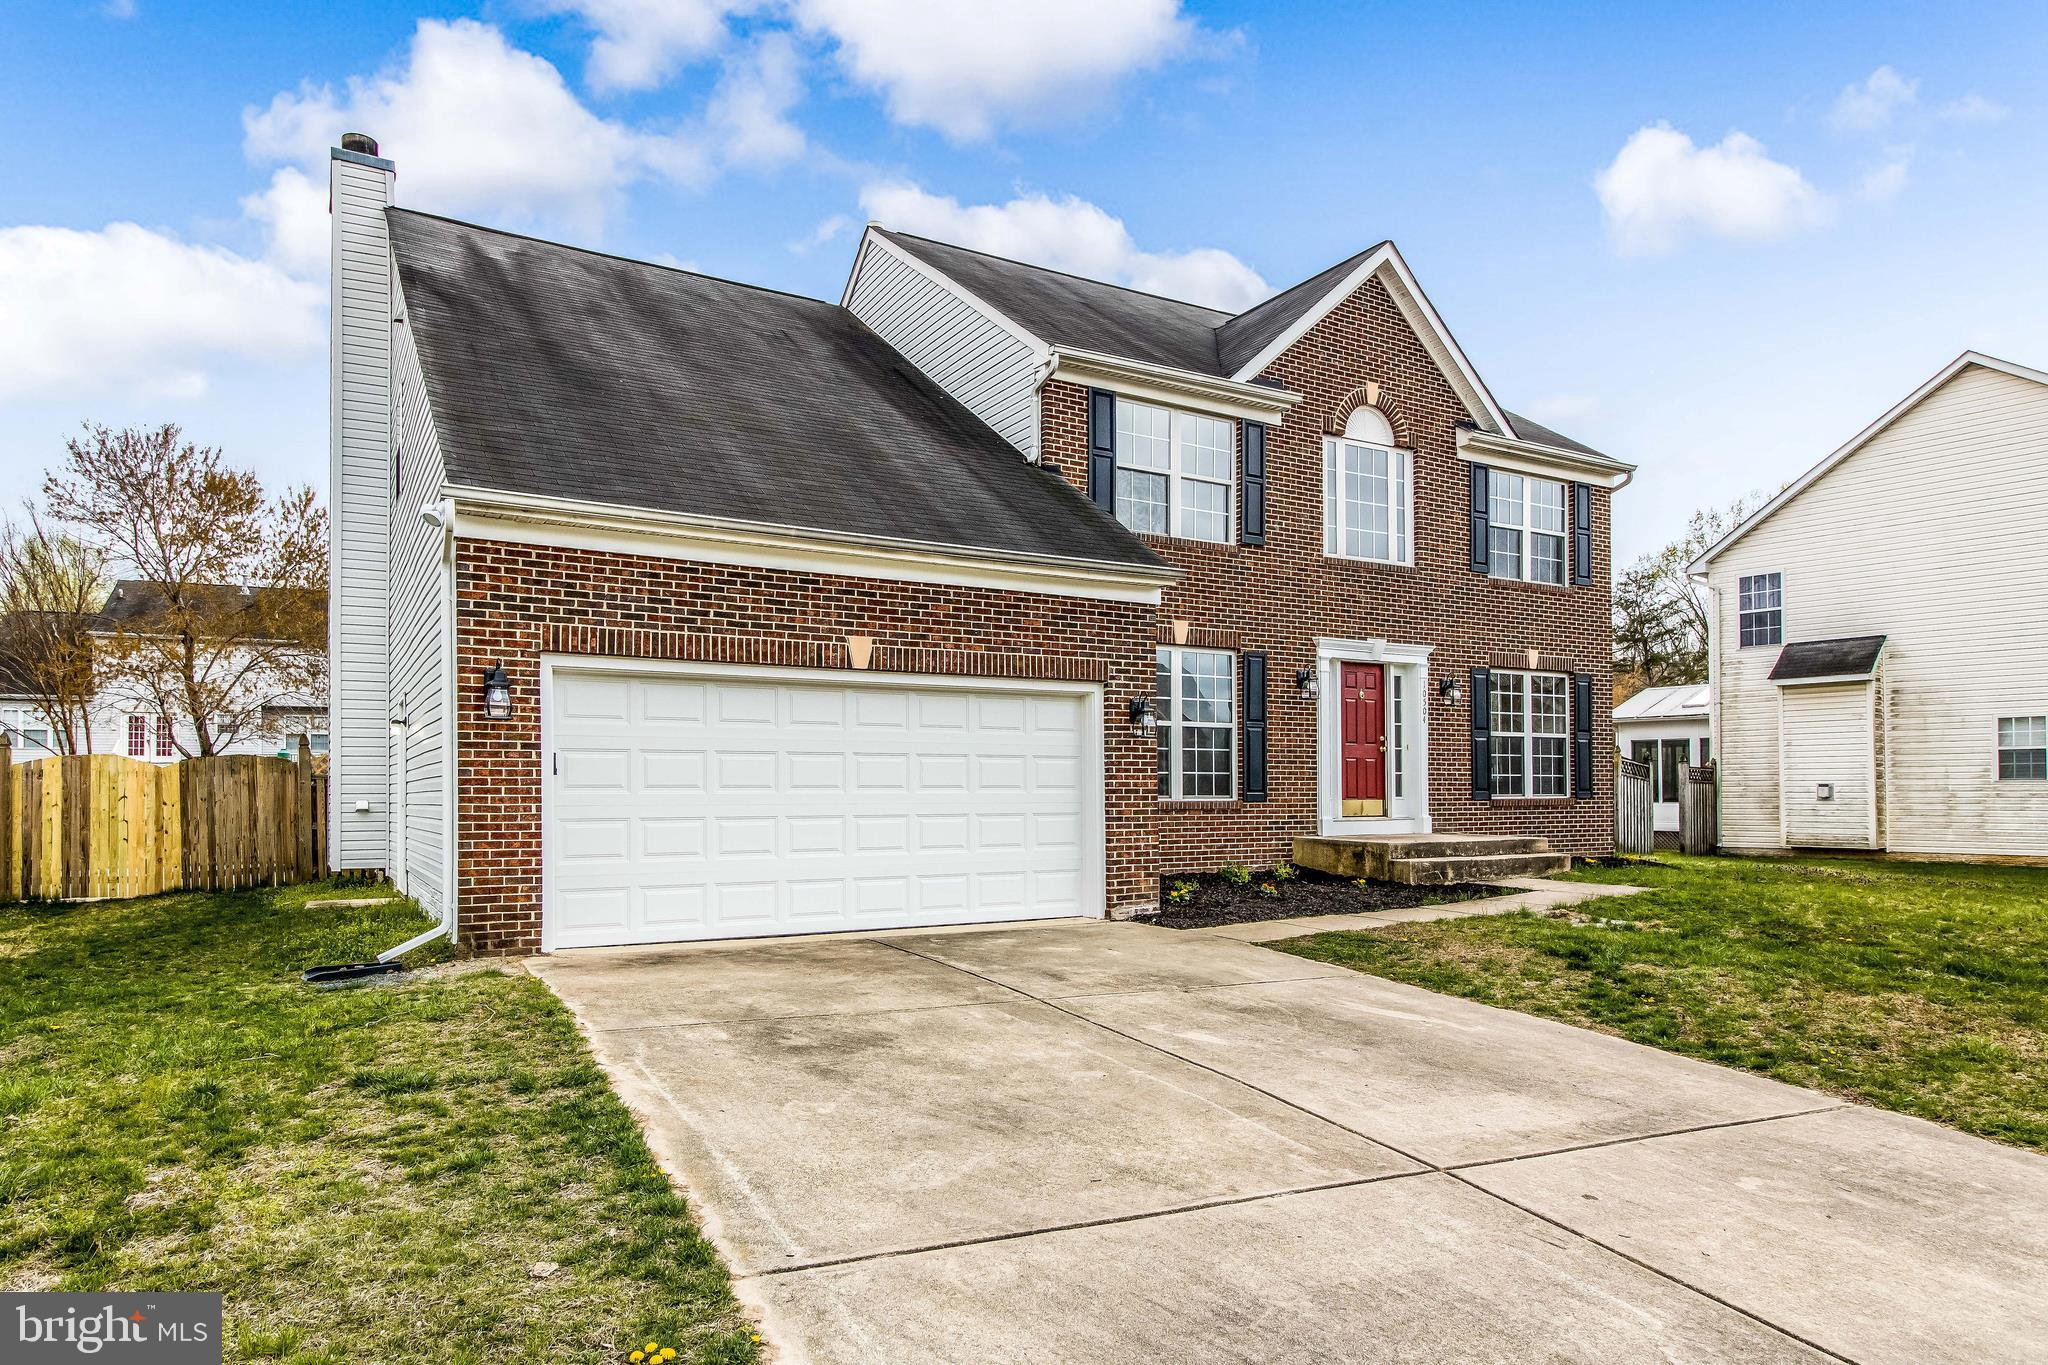 10504 GUY COURT, CHELTENHAM, MD 20623